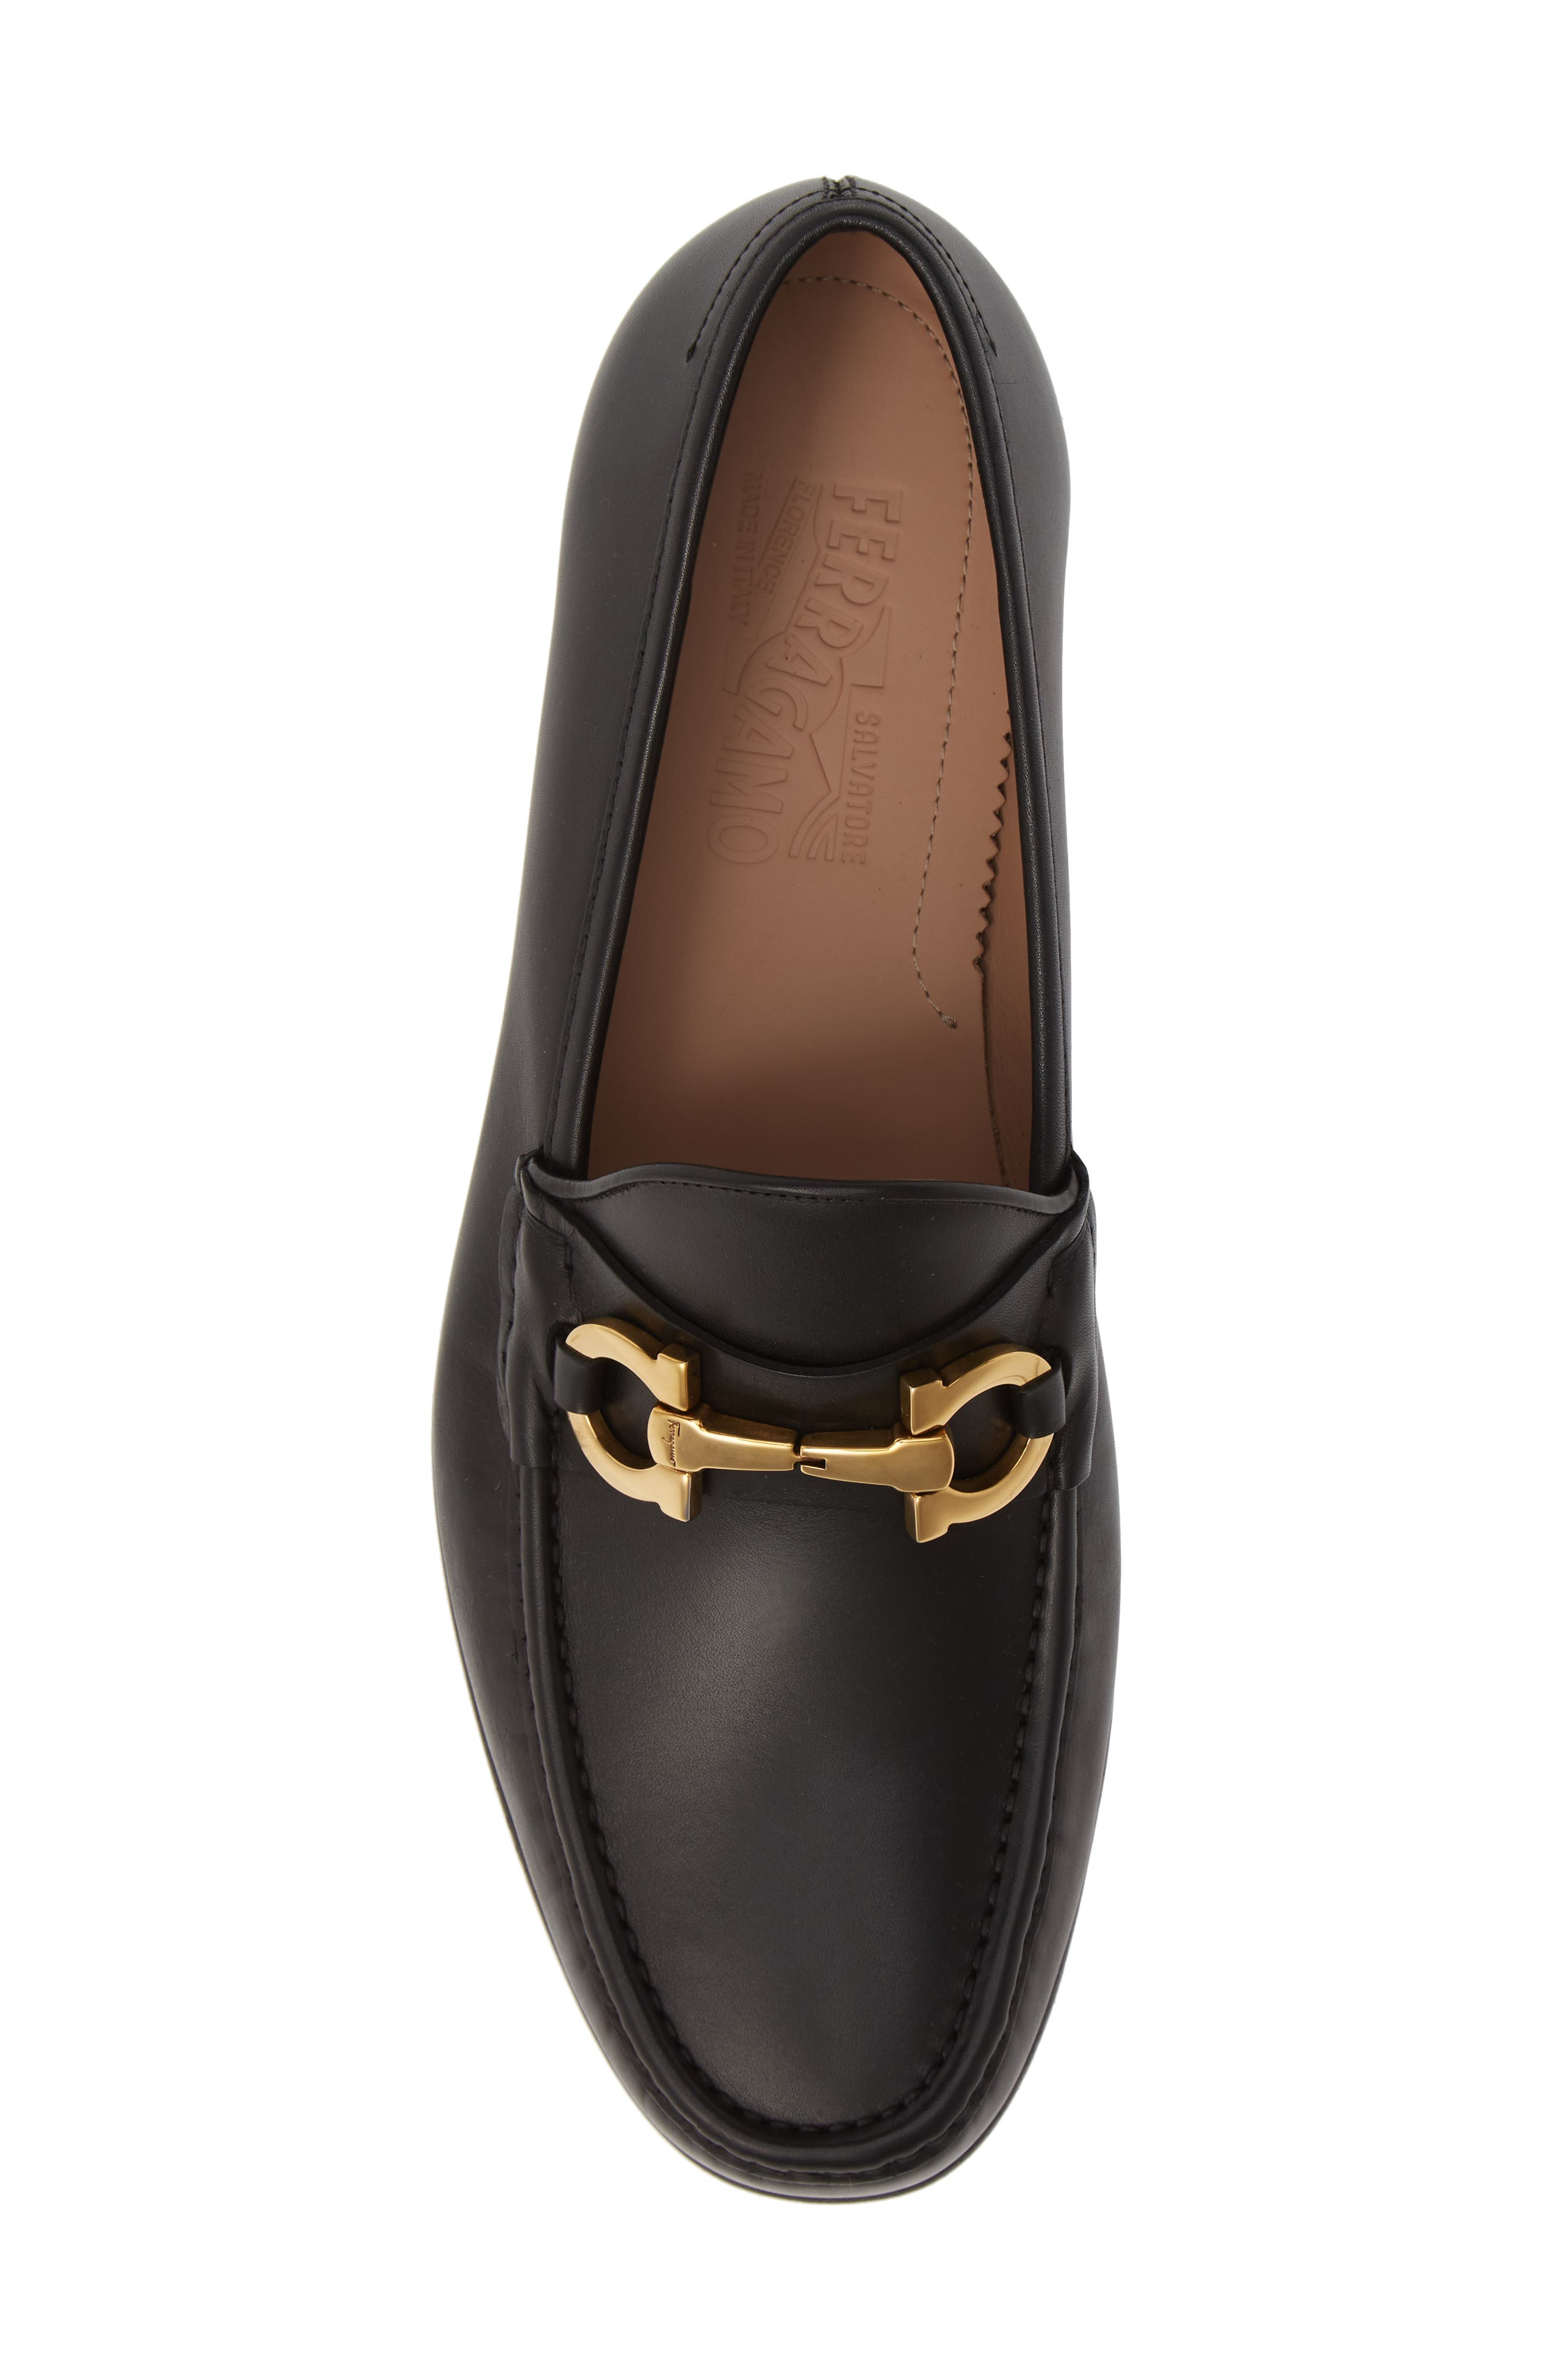 Bond Bitted Moc Loafer,                             Alternate thumbnail 5, color,                             NERO LEATHER